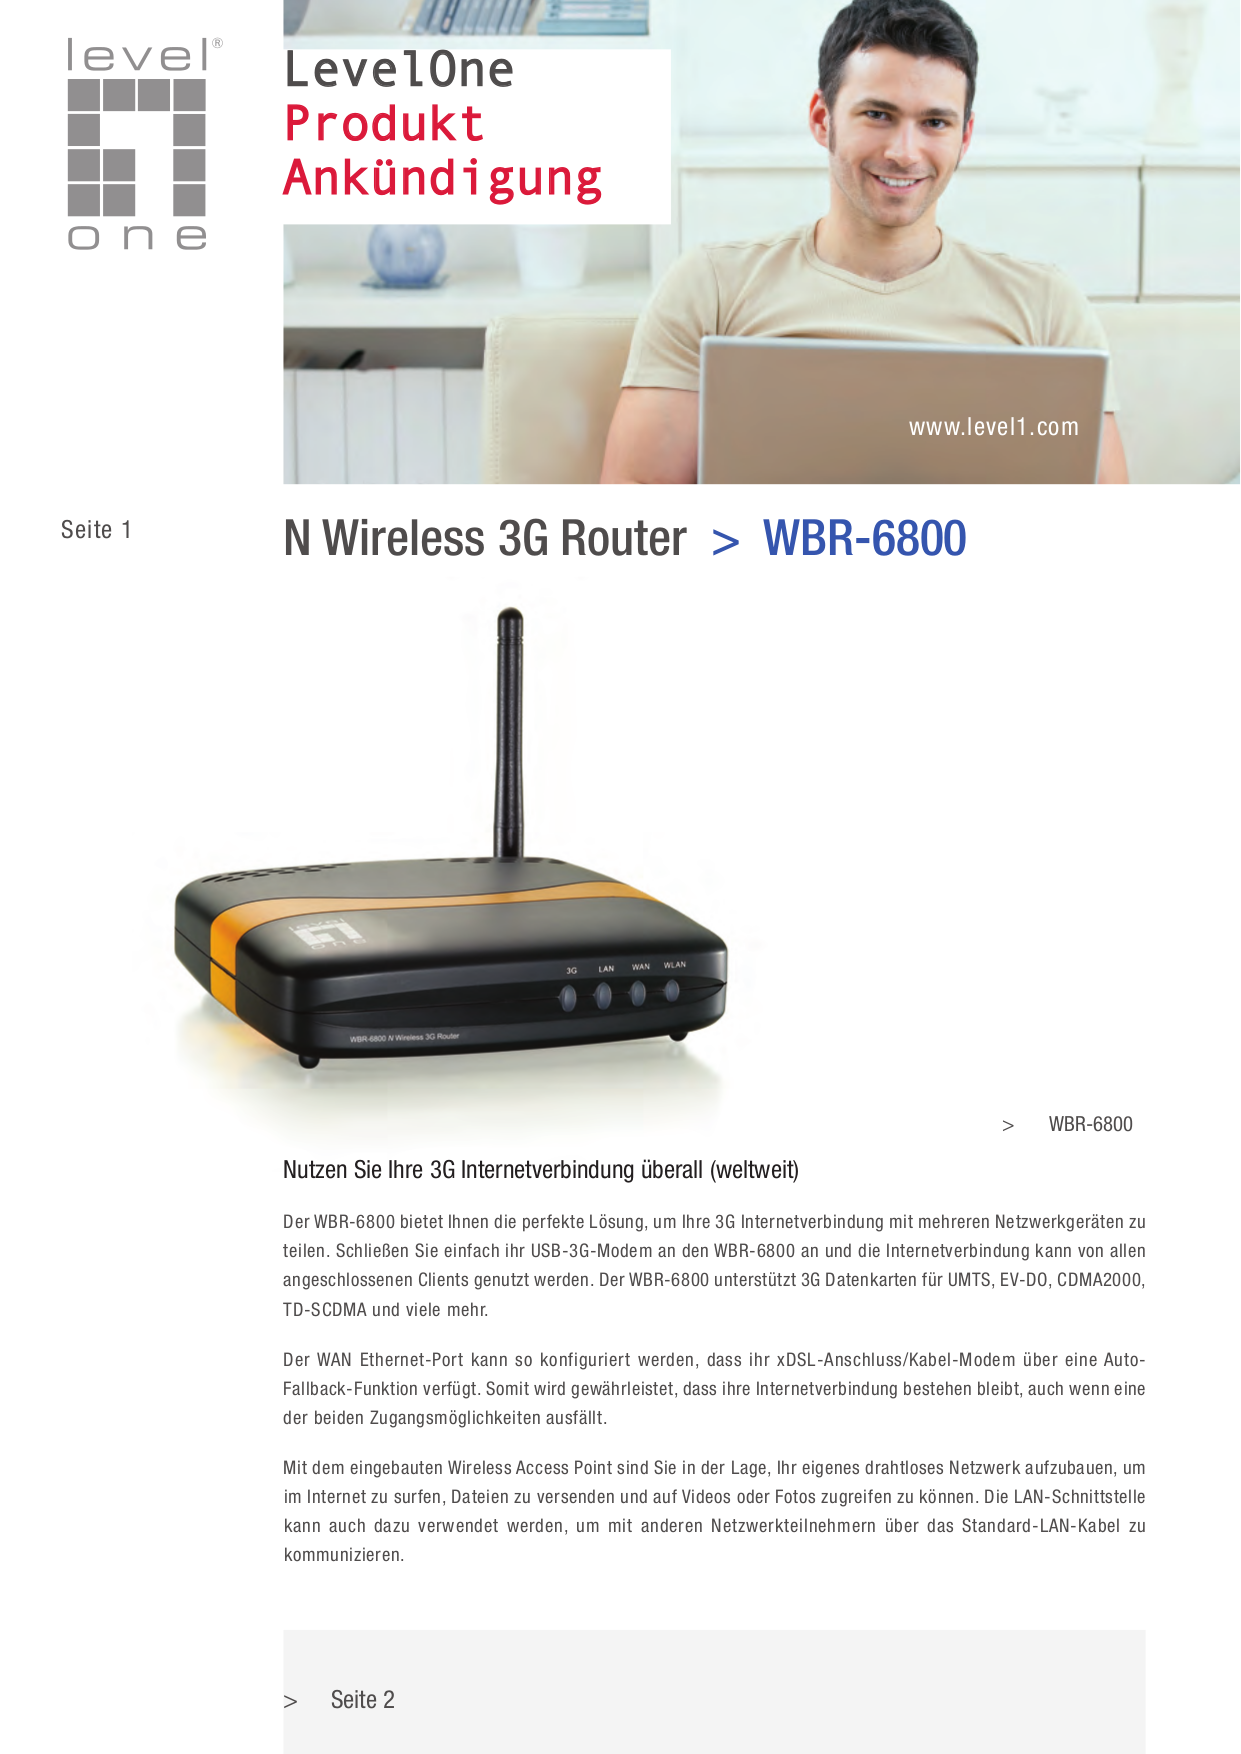 pdf for LevelOne Wireless Router WBR-6800 manual